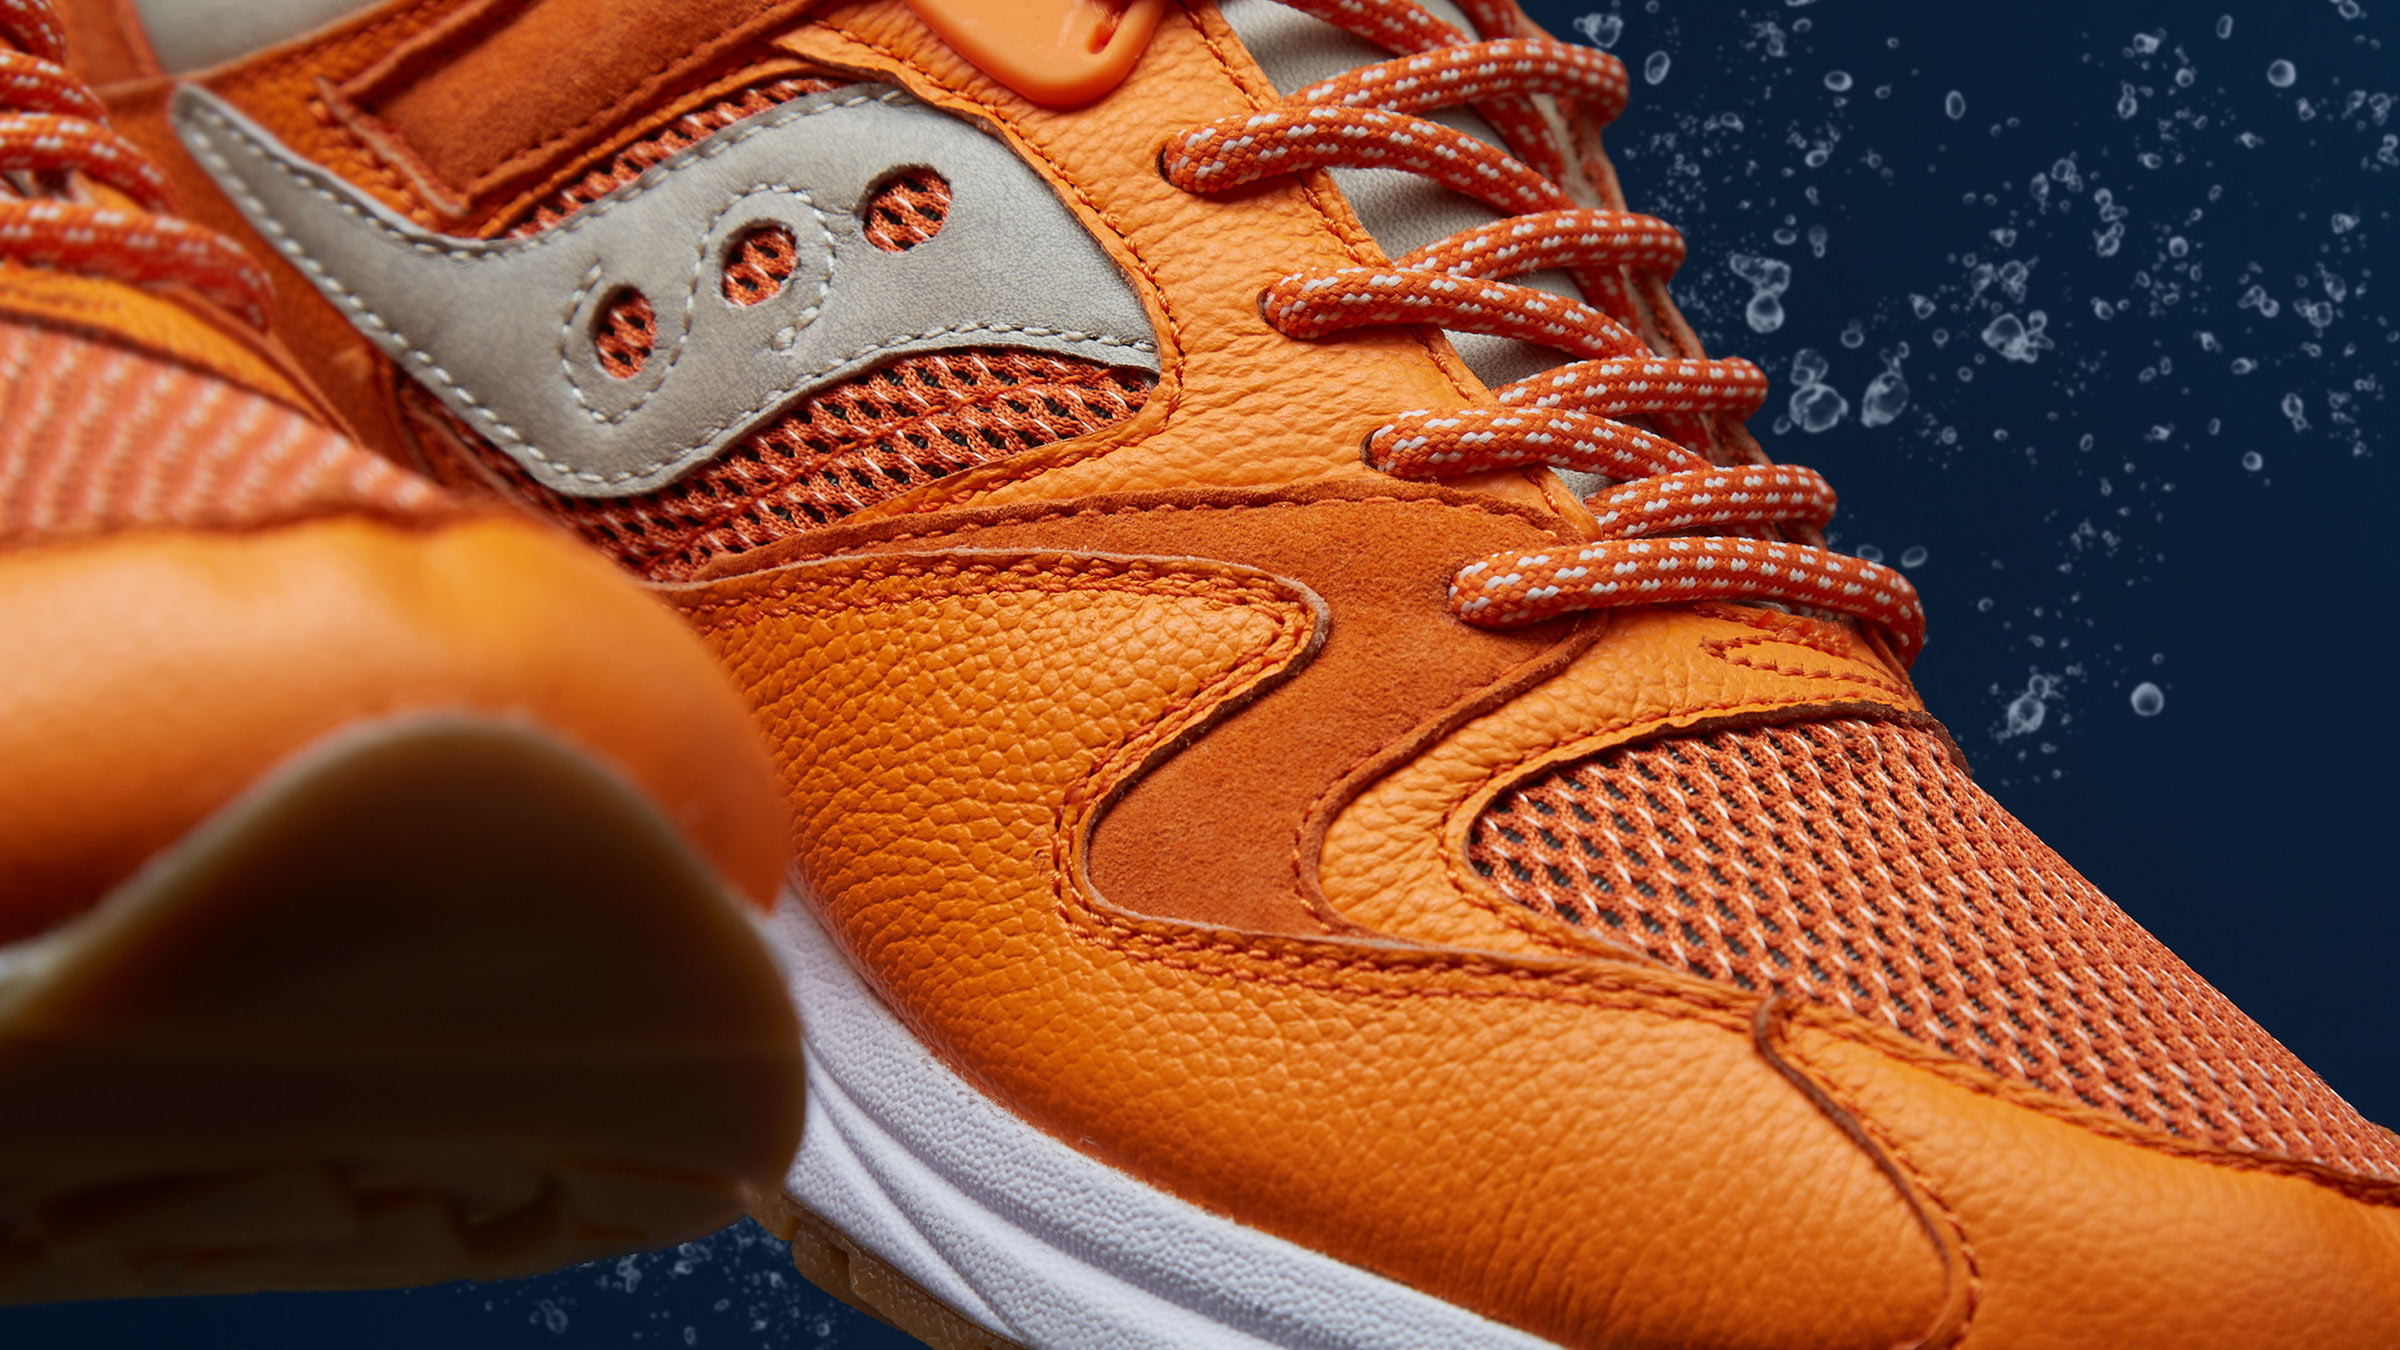 4d5439dfbb07 Our catch of the day serves up a lobster flavoured runner in collaboration  with Massachusetts-based Saucony. A nod to one of New England s most  beloved ...